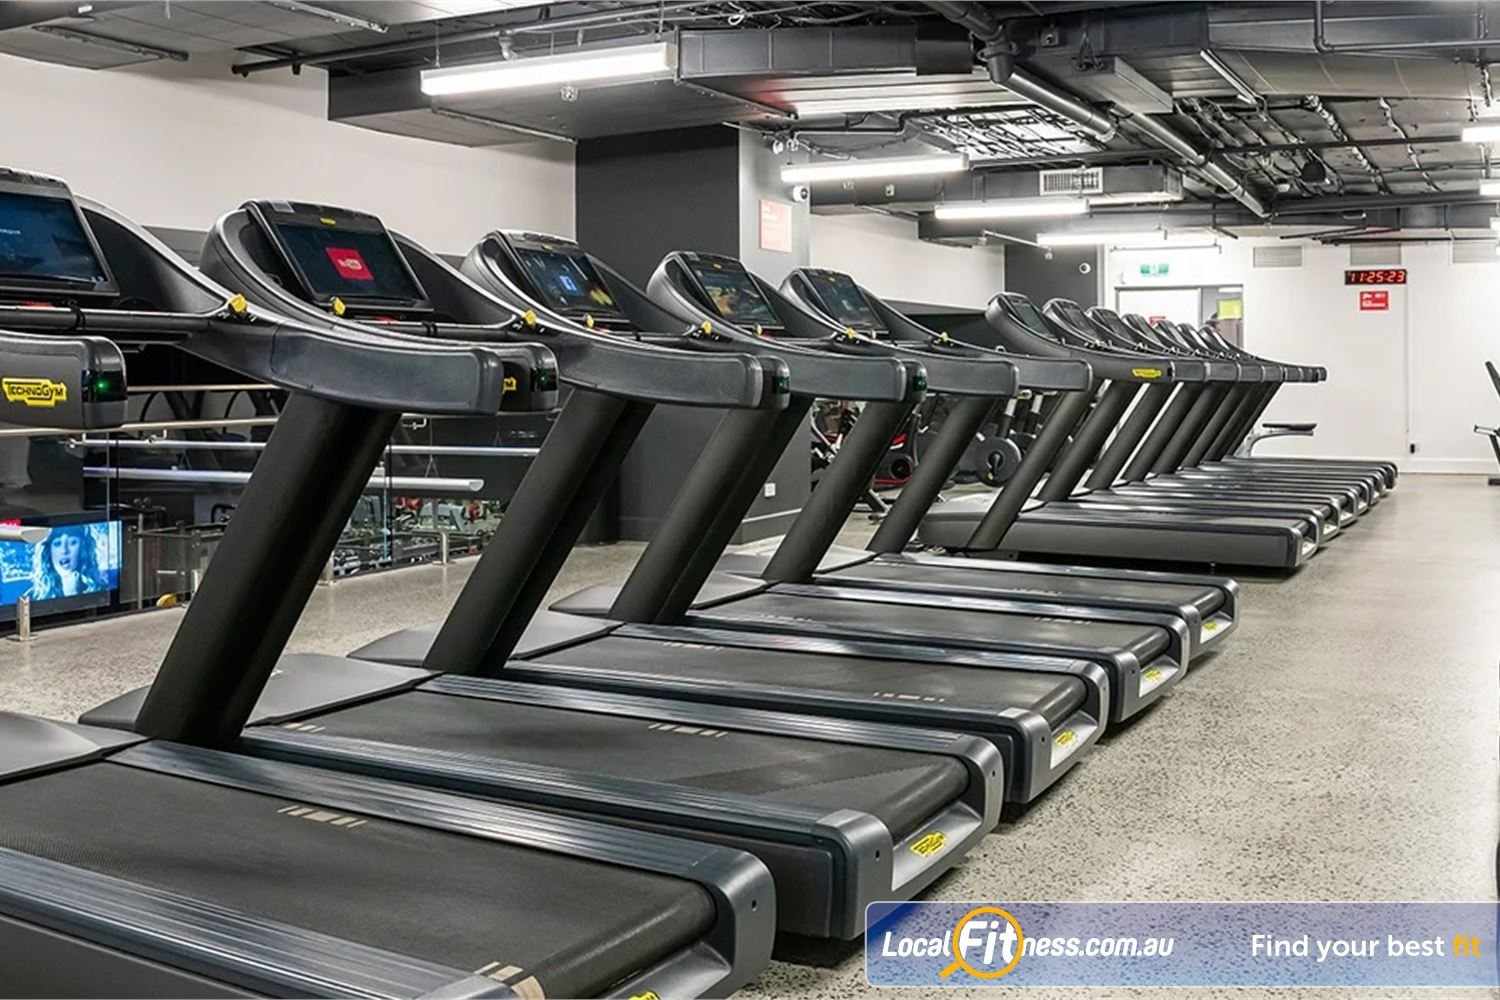 Fitness First Platinum Pitt St Sydney Welcome Pitt St Platinum is an athletic multi-purpose Sydney gym.